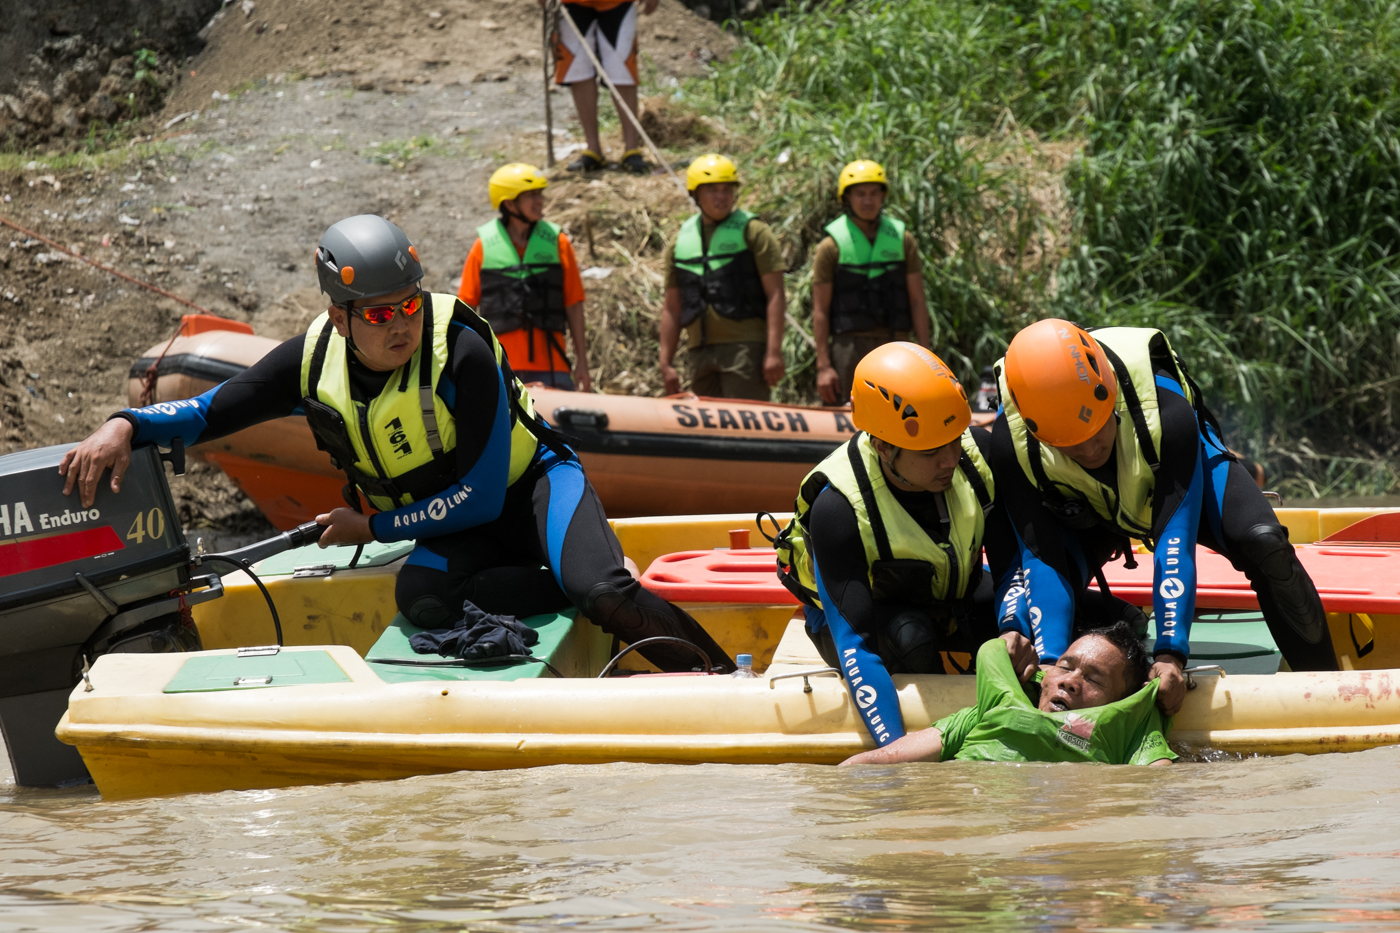 SIMULATION. Marikina City rescuers, during a drill, pull a 'drowning victim' out of the Marikina River on July 30, 2015. File photo by Pat Nabong/Rappler